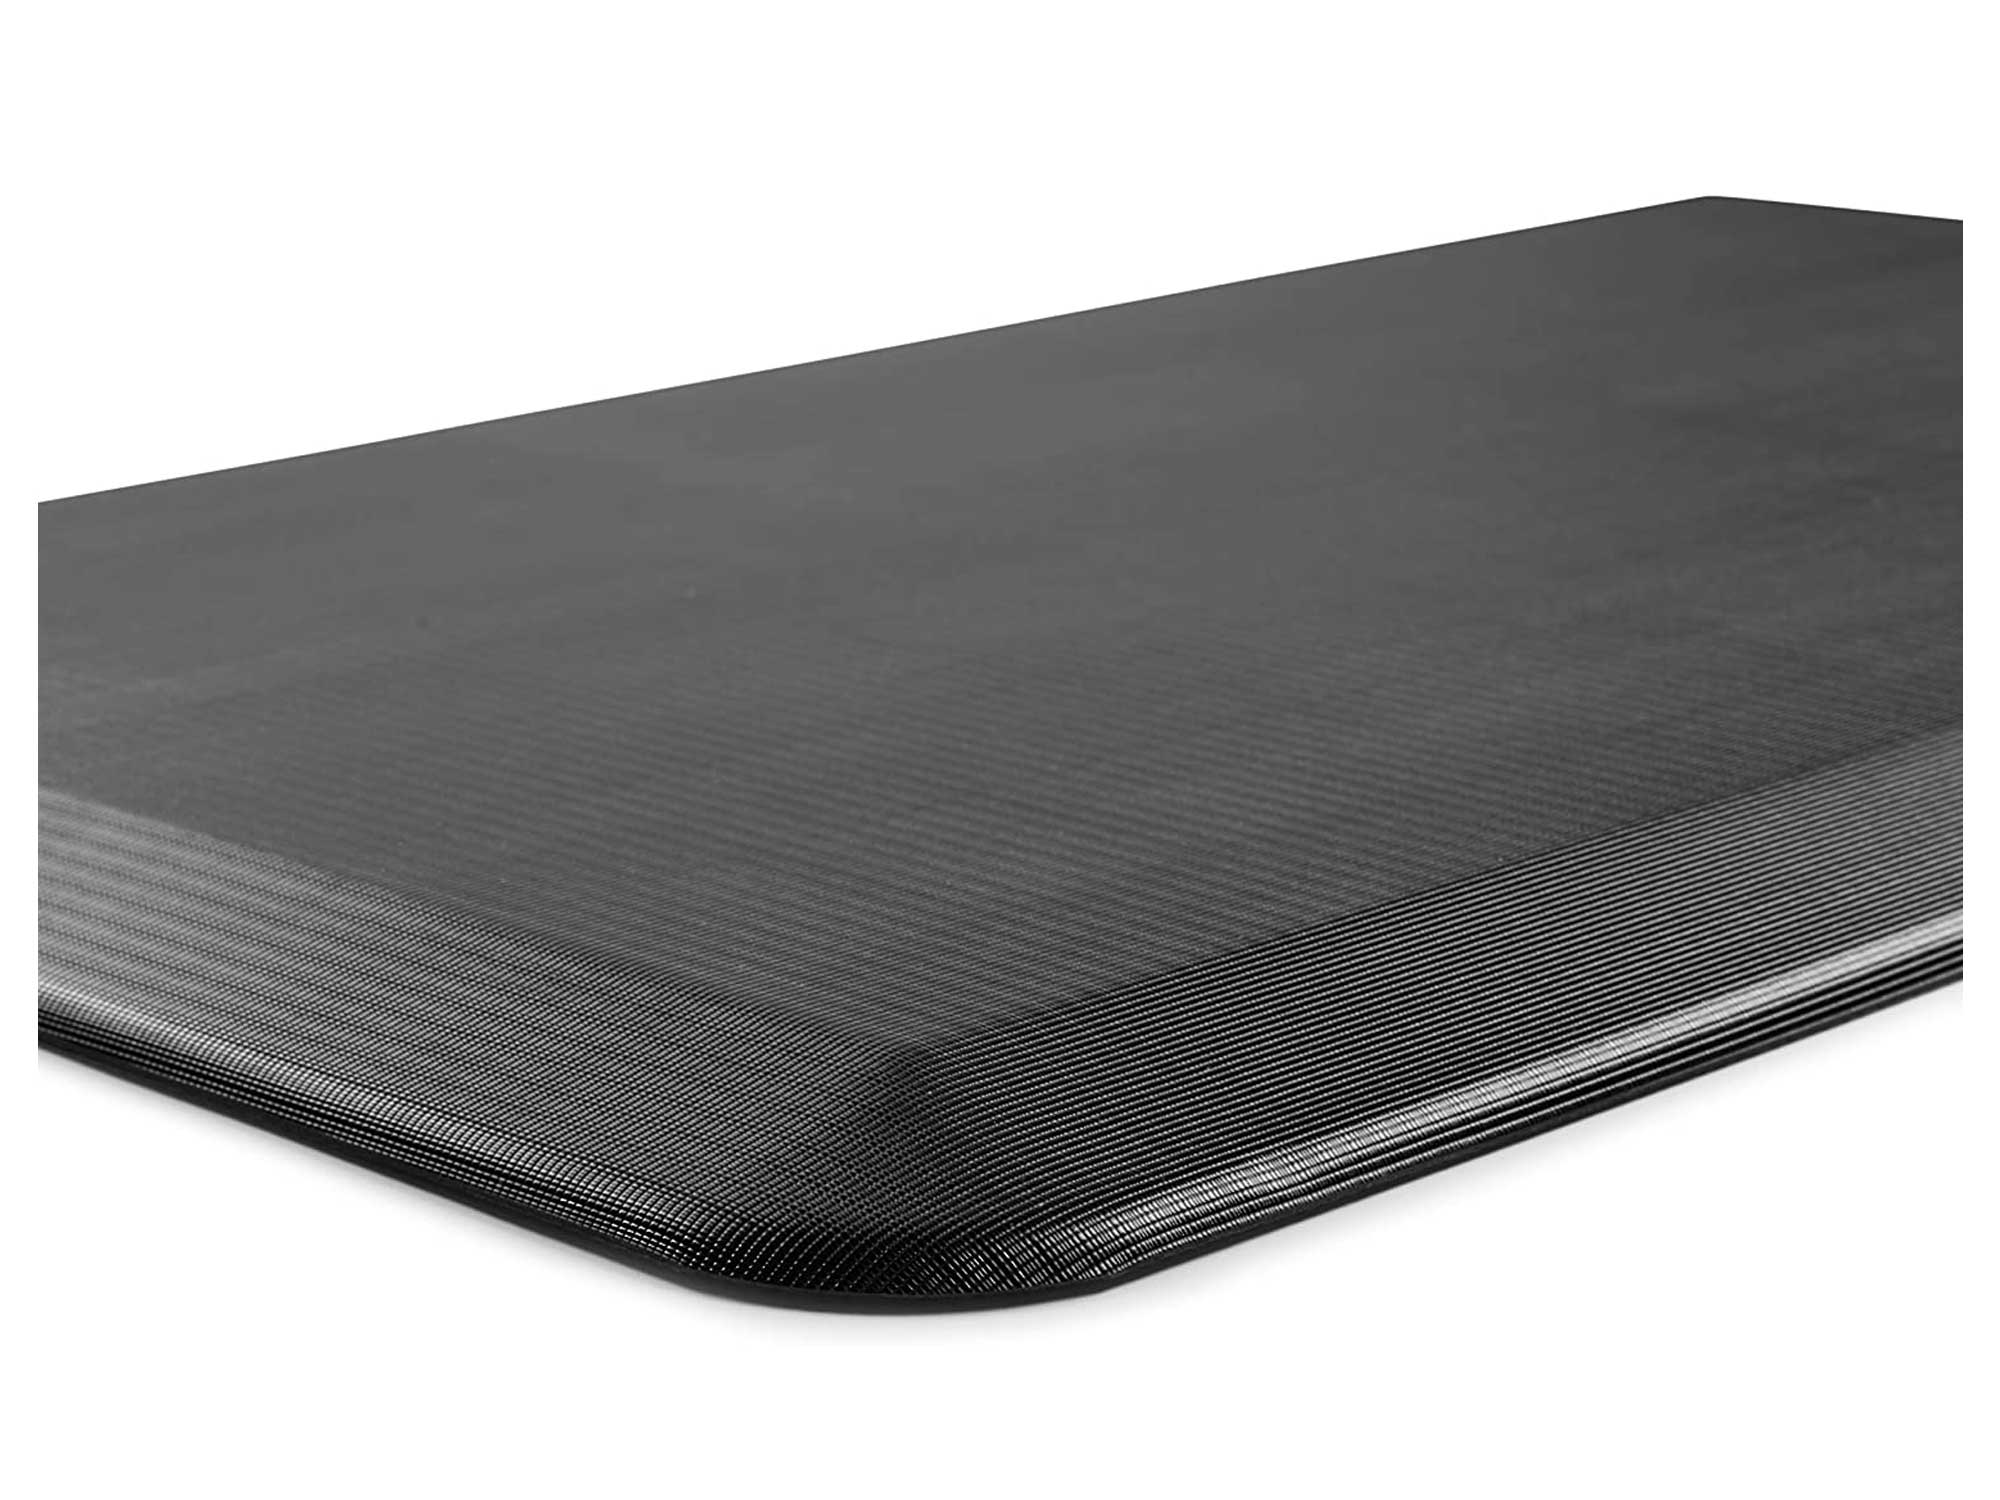 ComfiLife Anti Fatigue Floor Mat – 3/4 Inch Thick Perfect Kitchen Mat, Standing Desk Mat – Comfort at Home, Office, Garage – Durable – Stain Resistant – Non-Slip Bottom – Black, 20x32 Inch